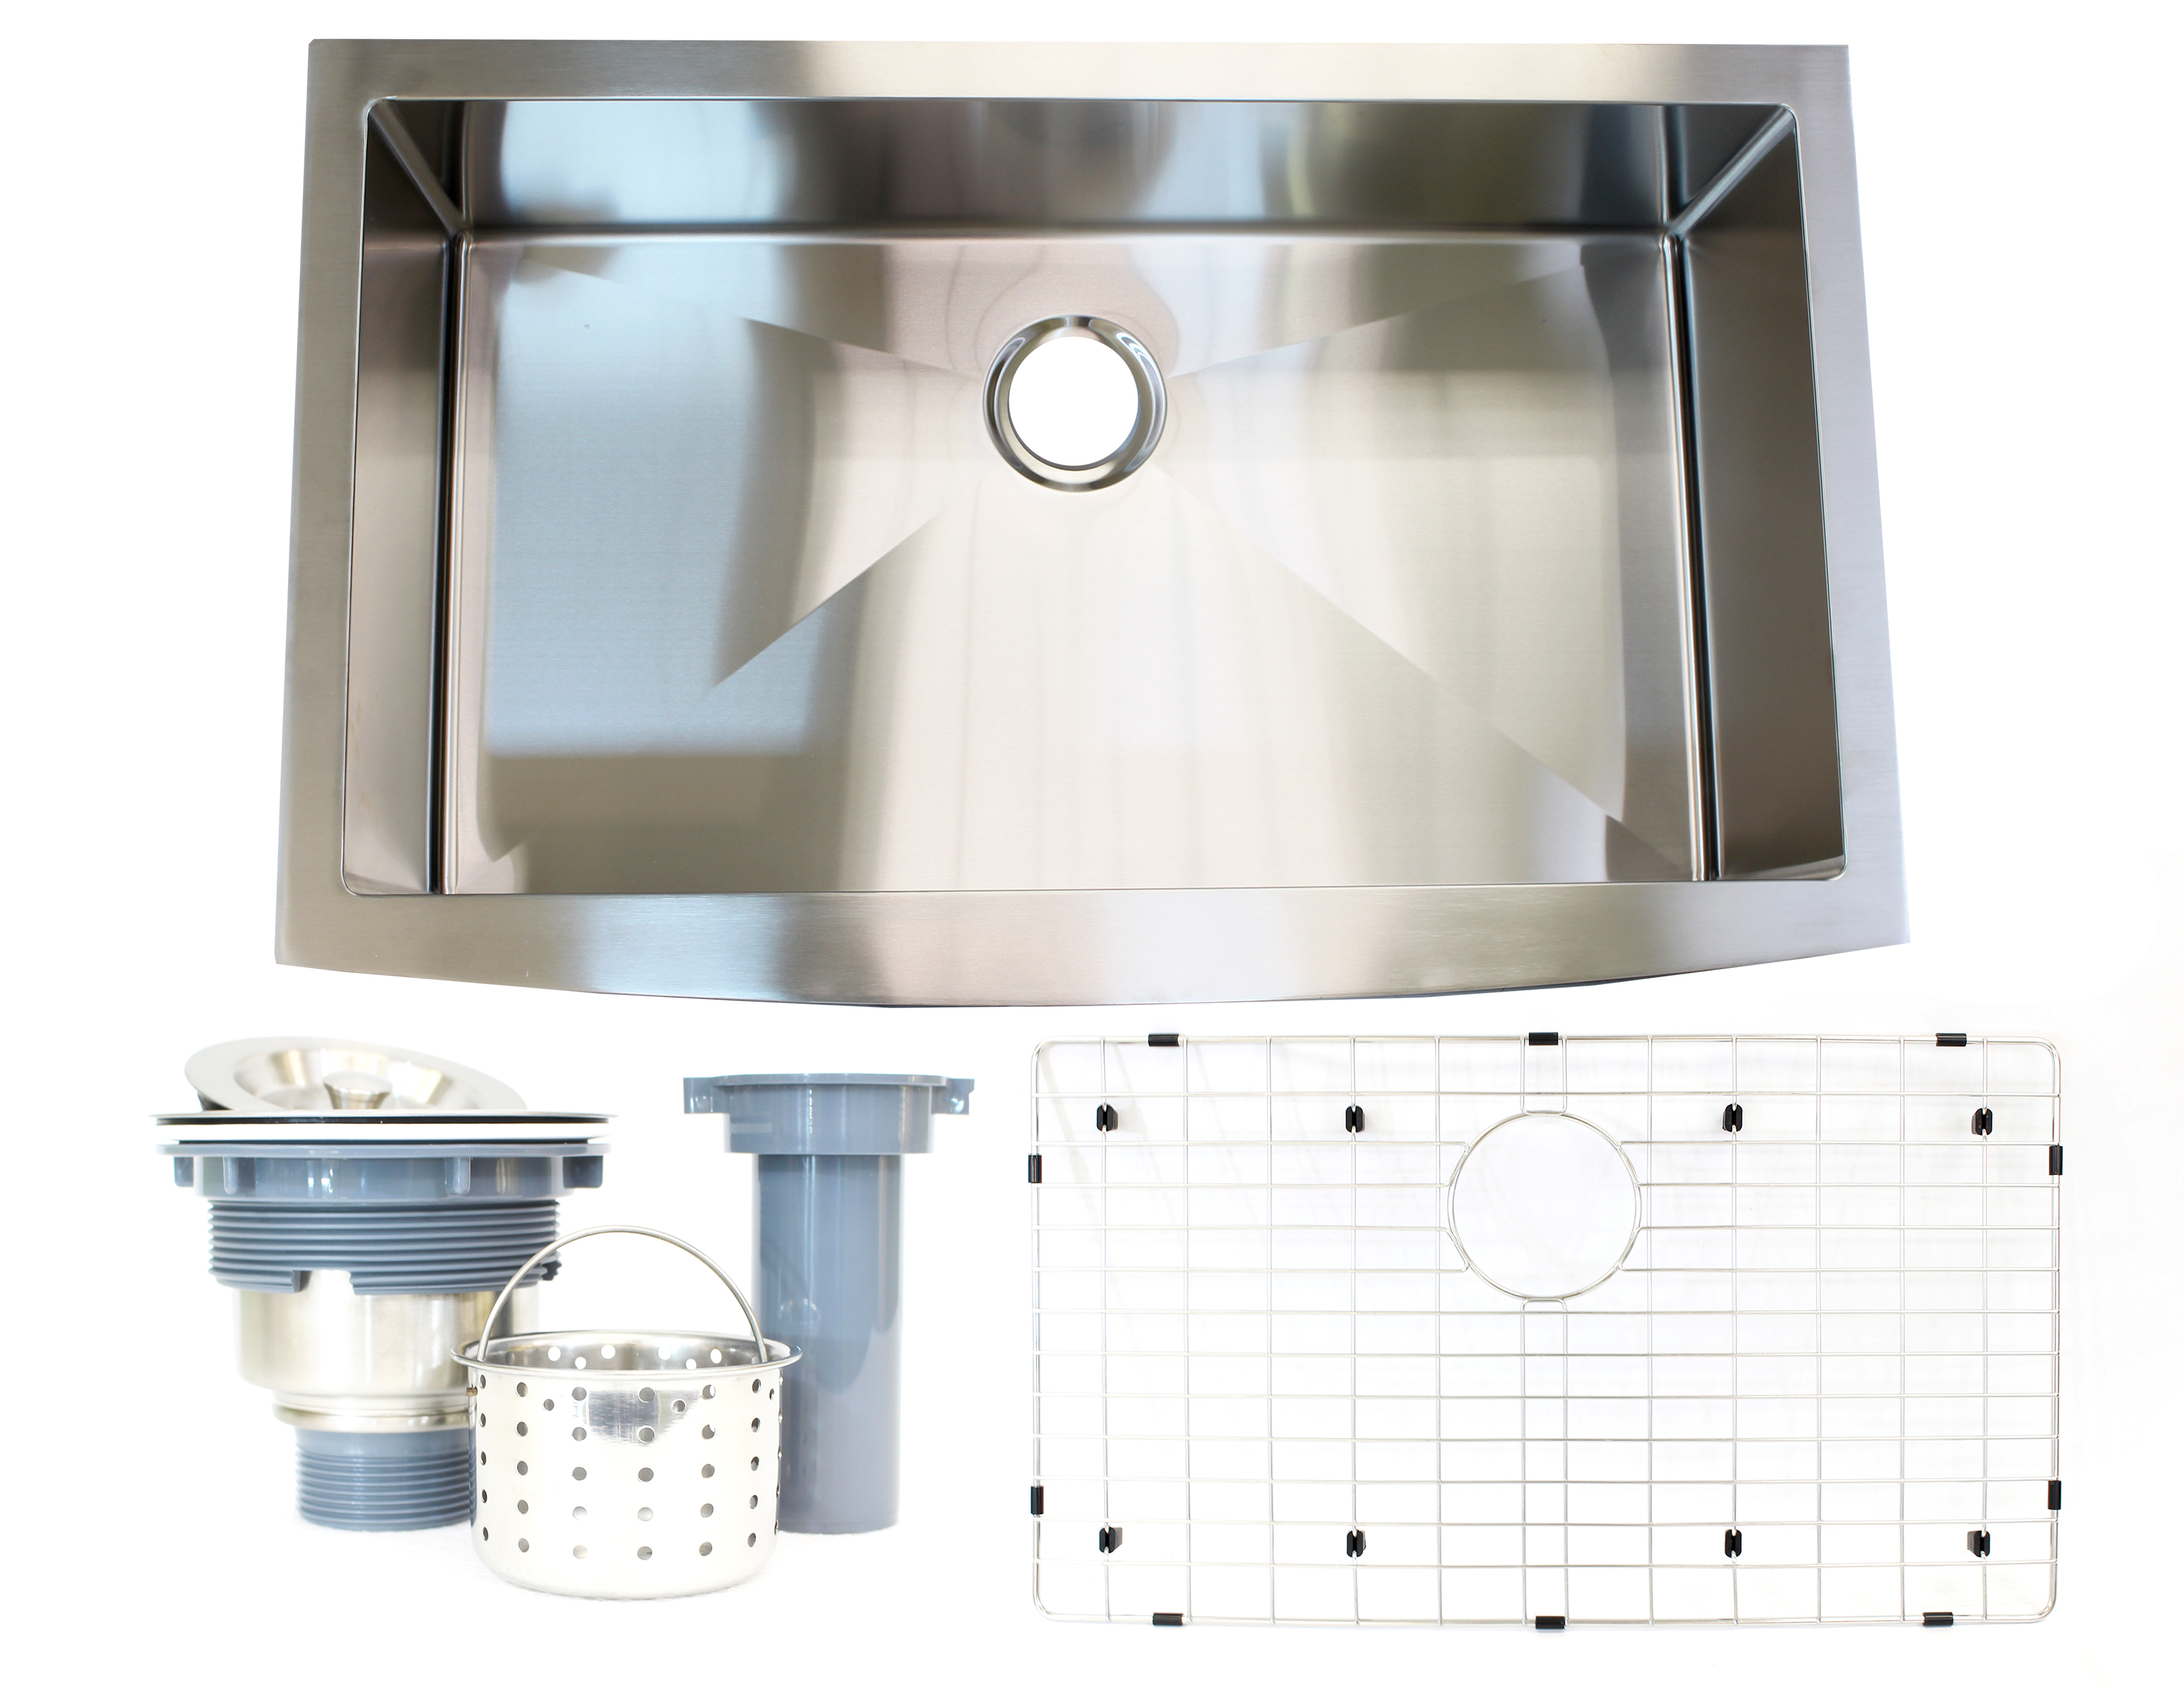 Details About New Apron Farmhouse Single Bowl Stainless Steel Kitchen Sink Undermount 36 Inch